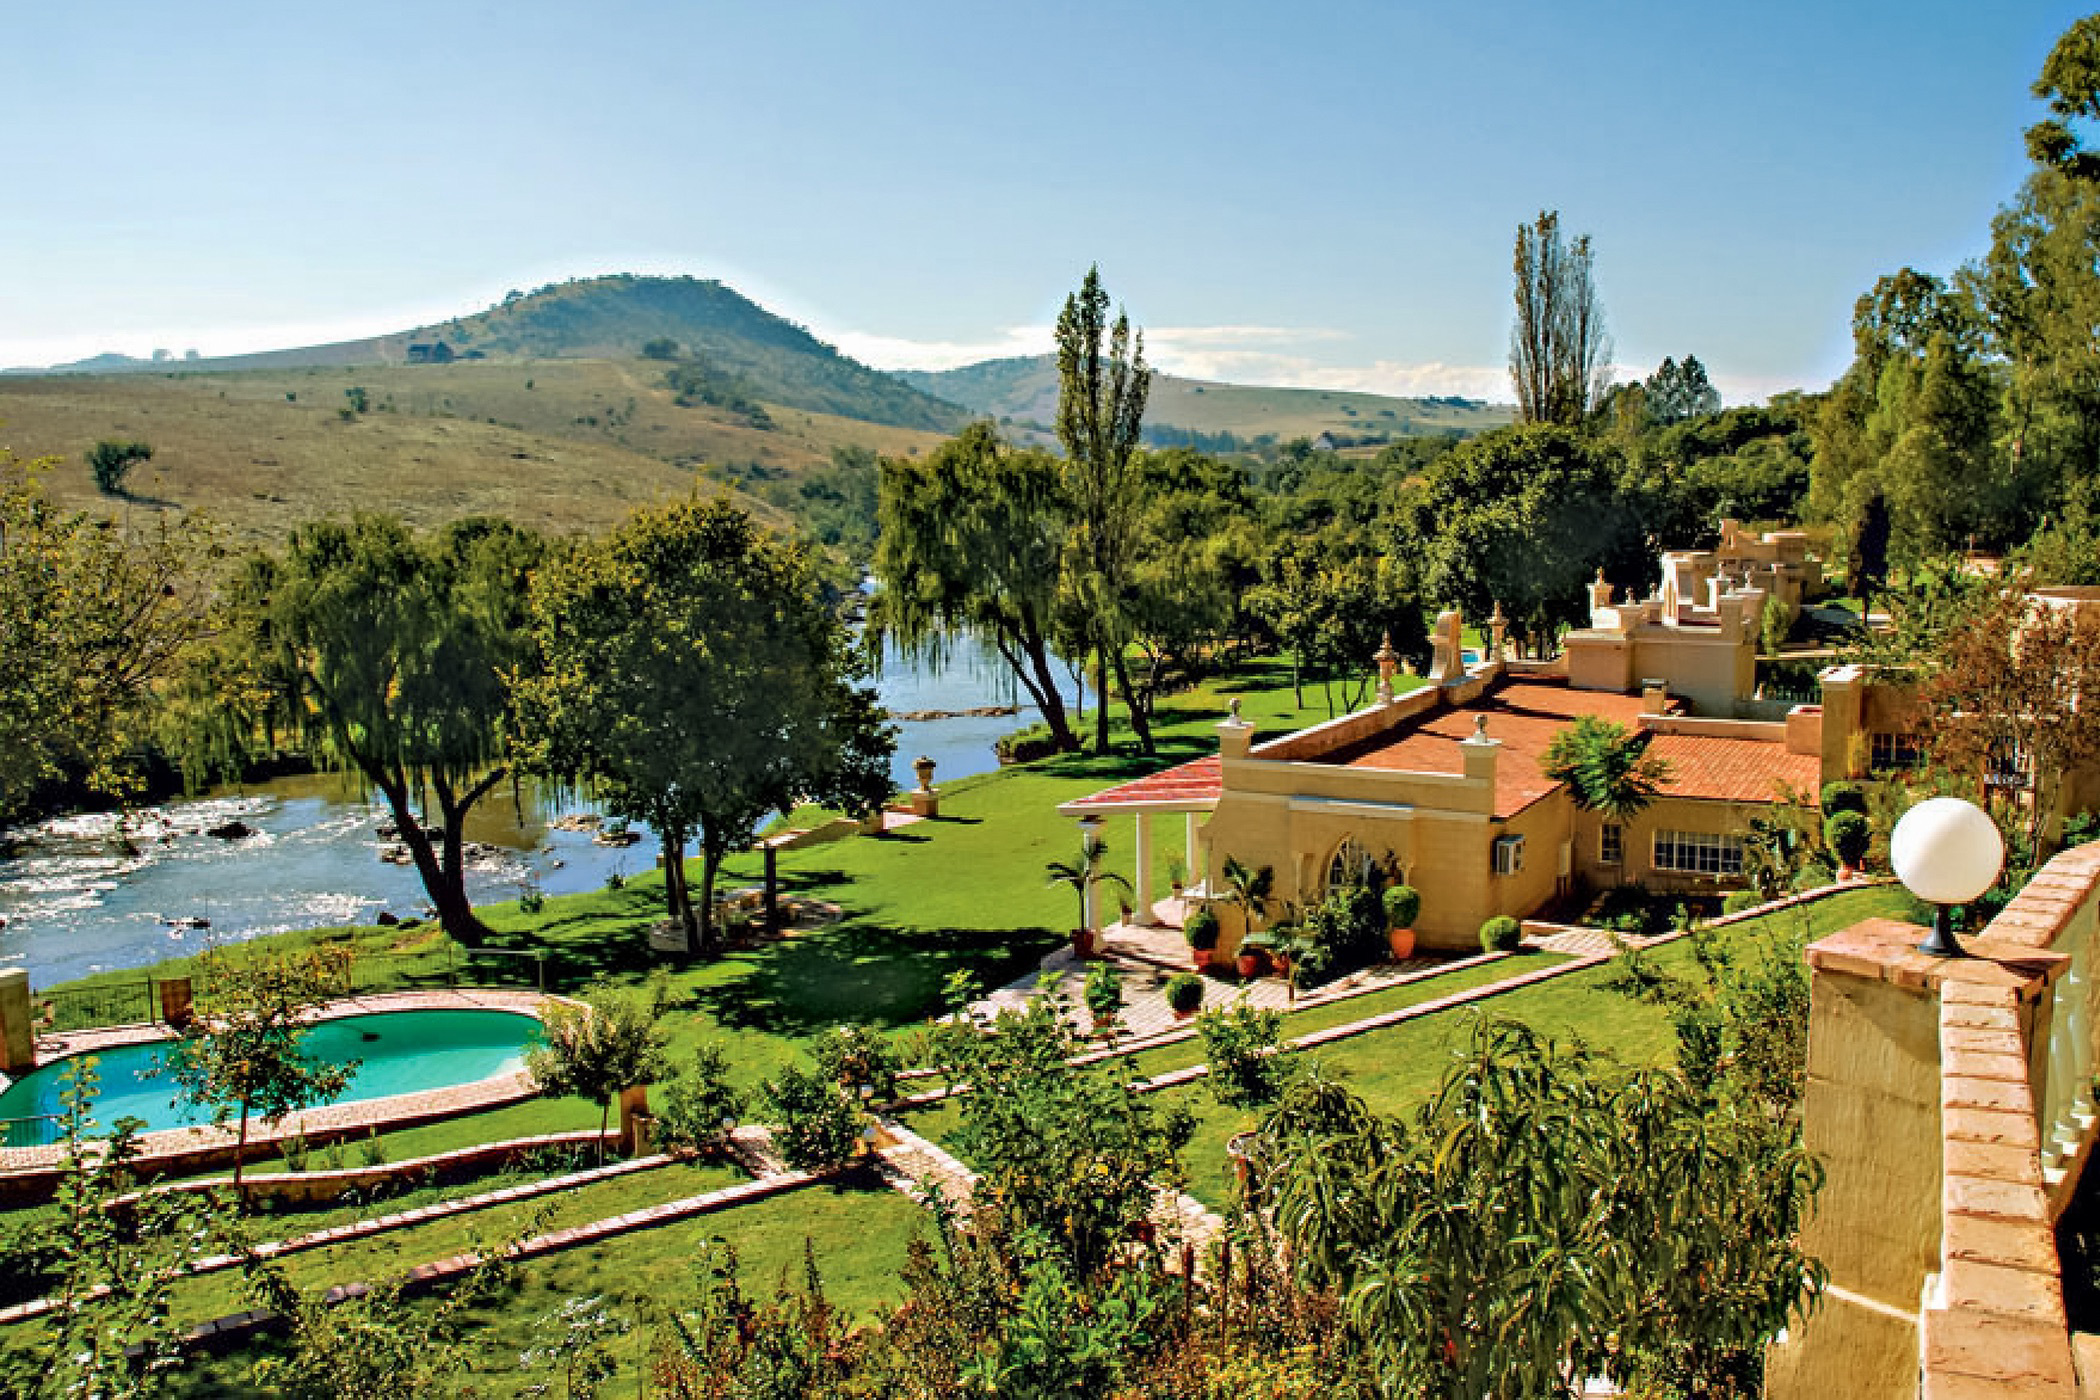 10 guest room country hotel for sale in Lanseria